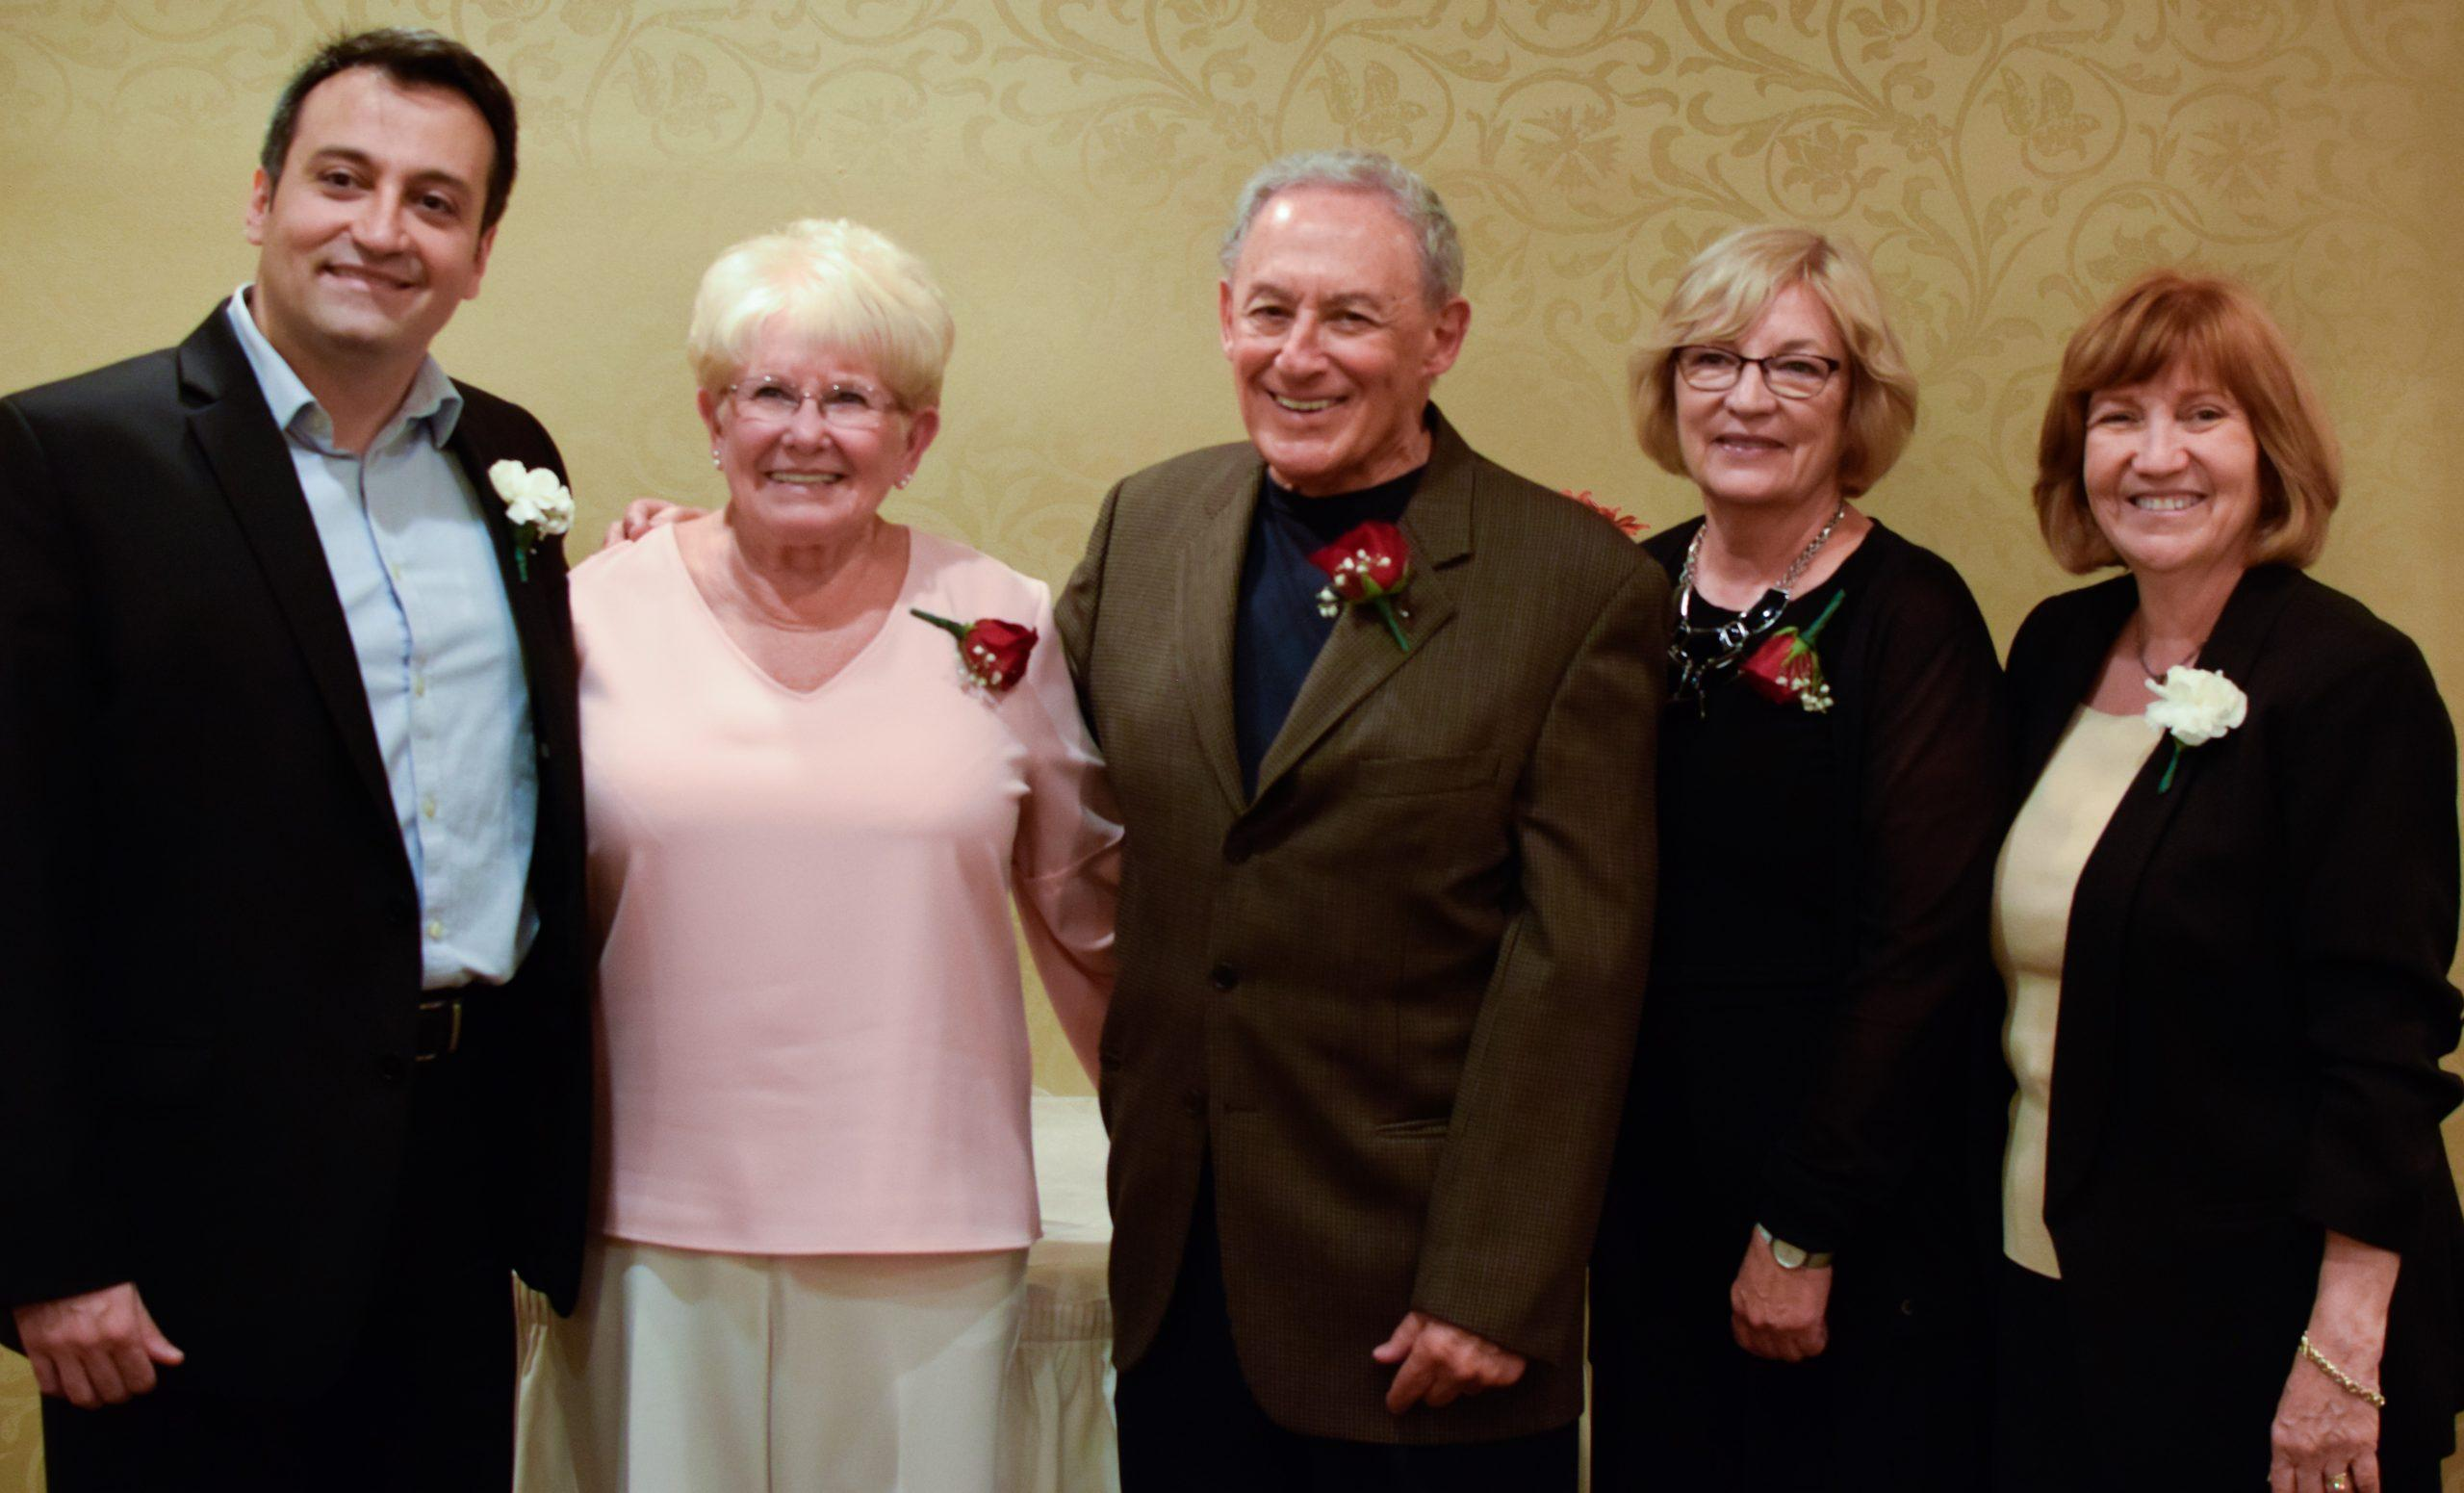 Zufall Health paid tribute to more than 100 volunteers for their dedicated service to the health center at a recent event at the Bridgewater Manor. Pictured from left: Dr. Sam Wakim, DMD, Zufall chief dental officer; Betsy Roberts, senior vice president, Fulton Bank (retired); 2019 Volunteer of the Year Dr. Howard Rappoport, DMD; Phyllis Kumpf, Good as New Volunteer; and Eva Turbiner, Zufall President and CEO.